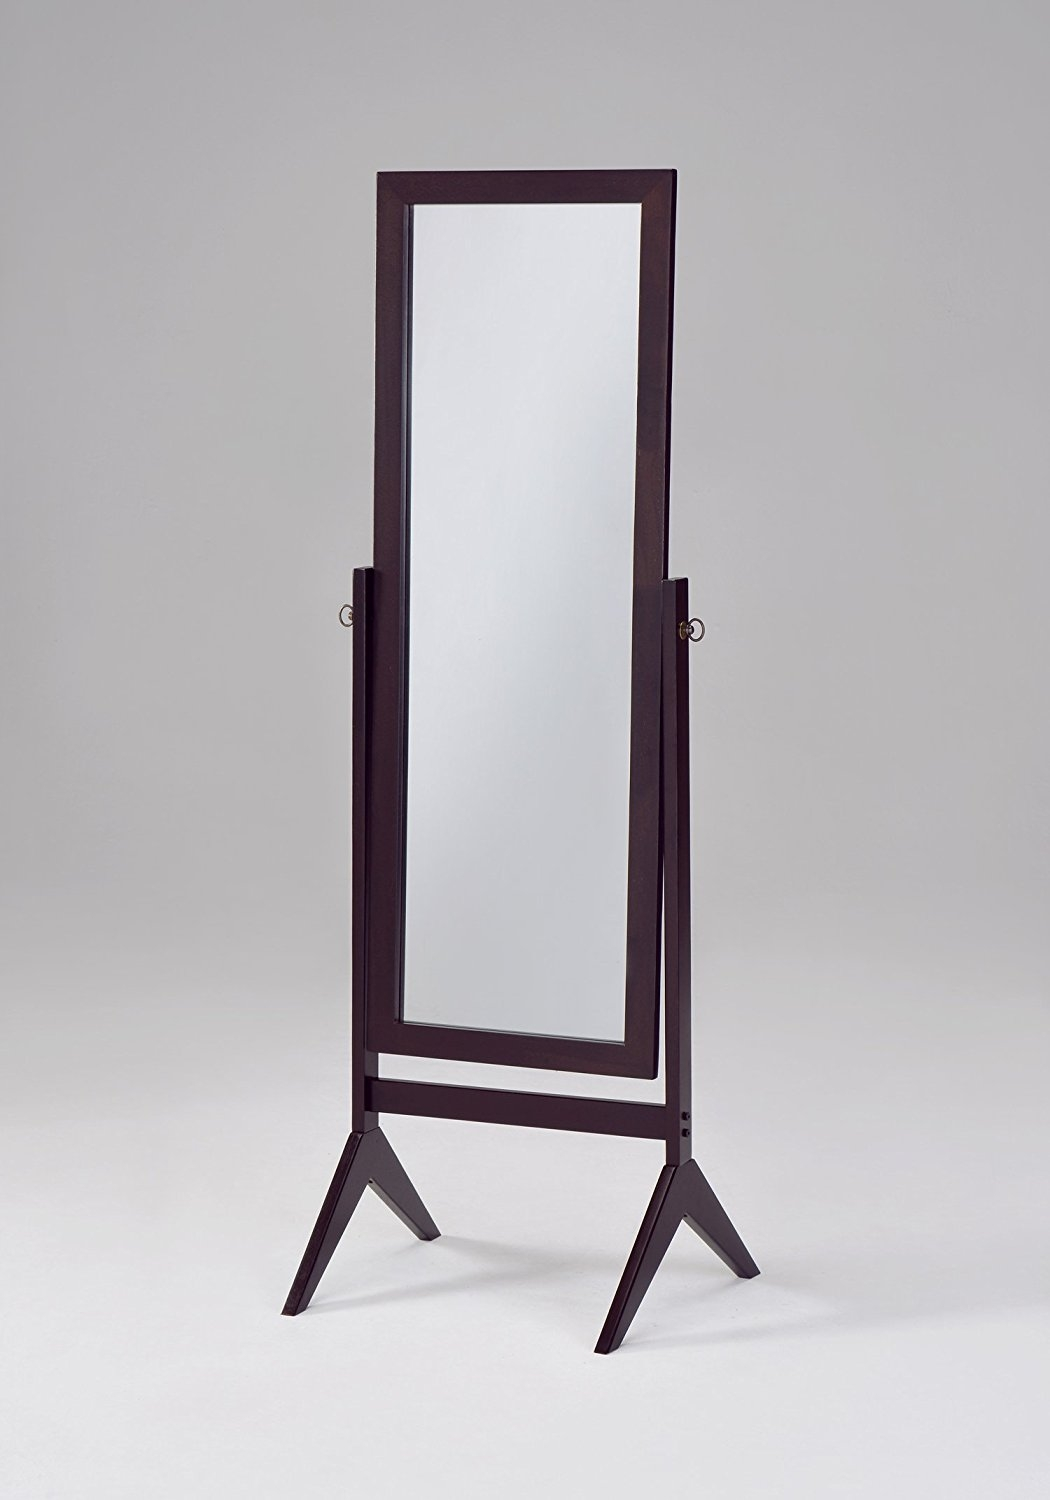 Amazon Ehomeproducts Espresso Finish Wooden Cheval Bedroom For Full Length Stand Alone Mirrors (Image 3 of 15)